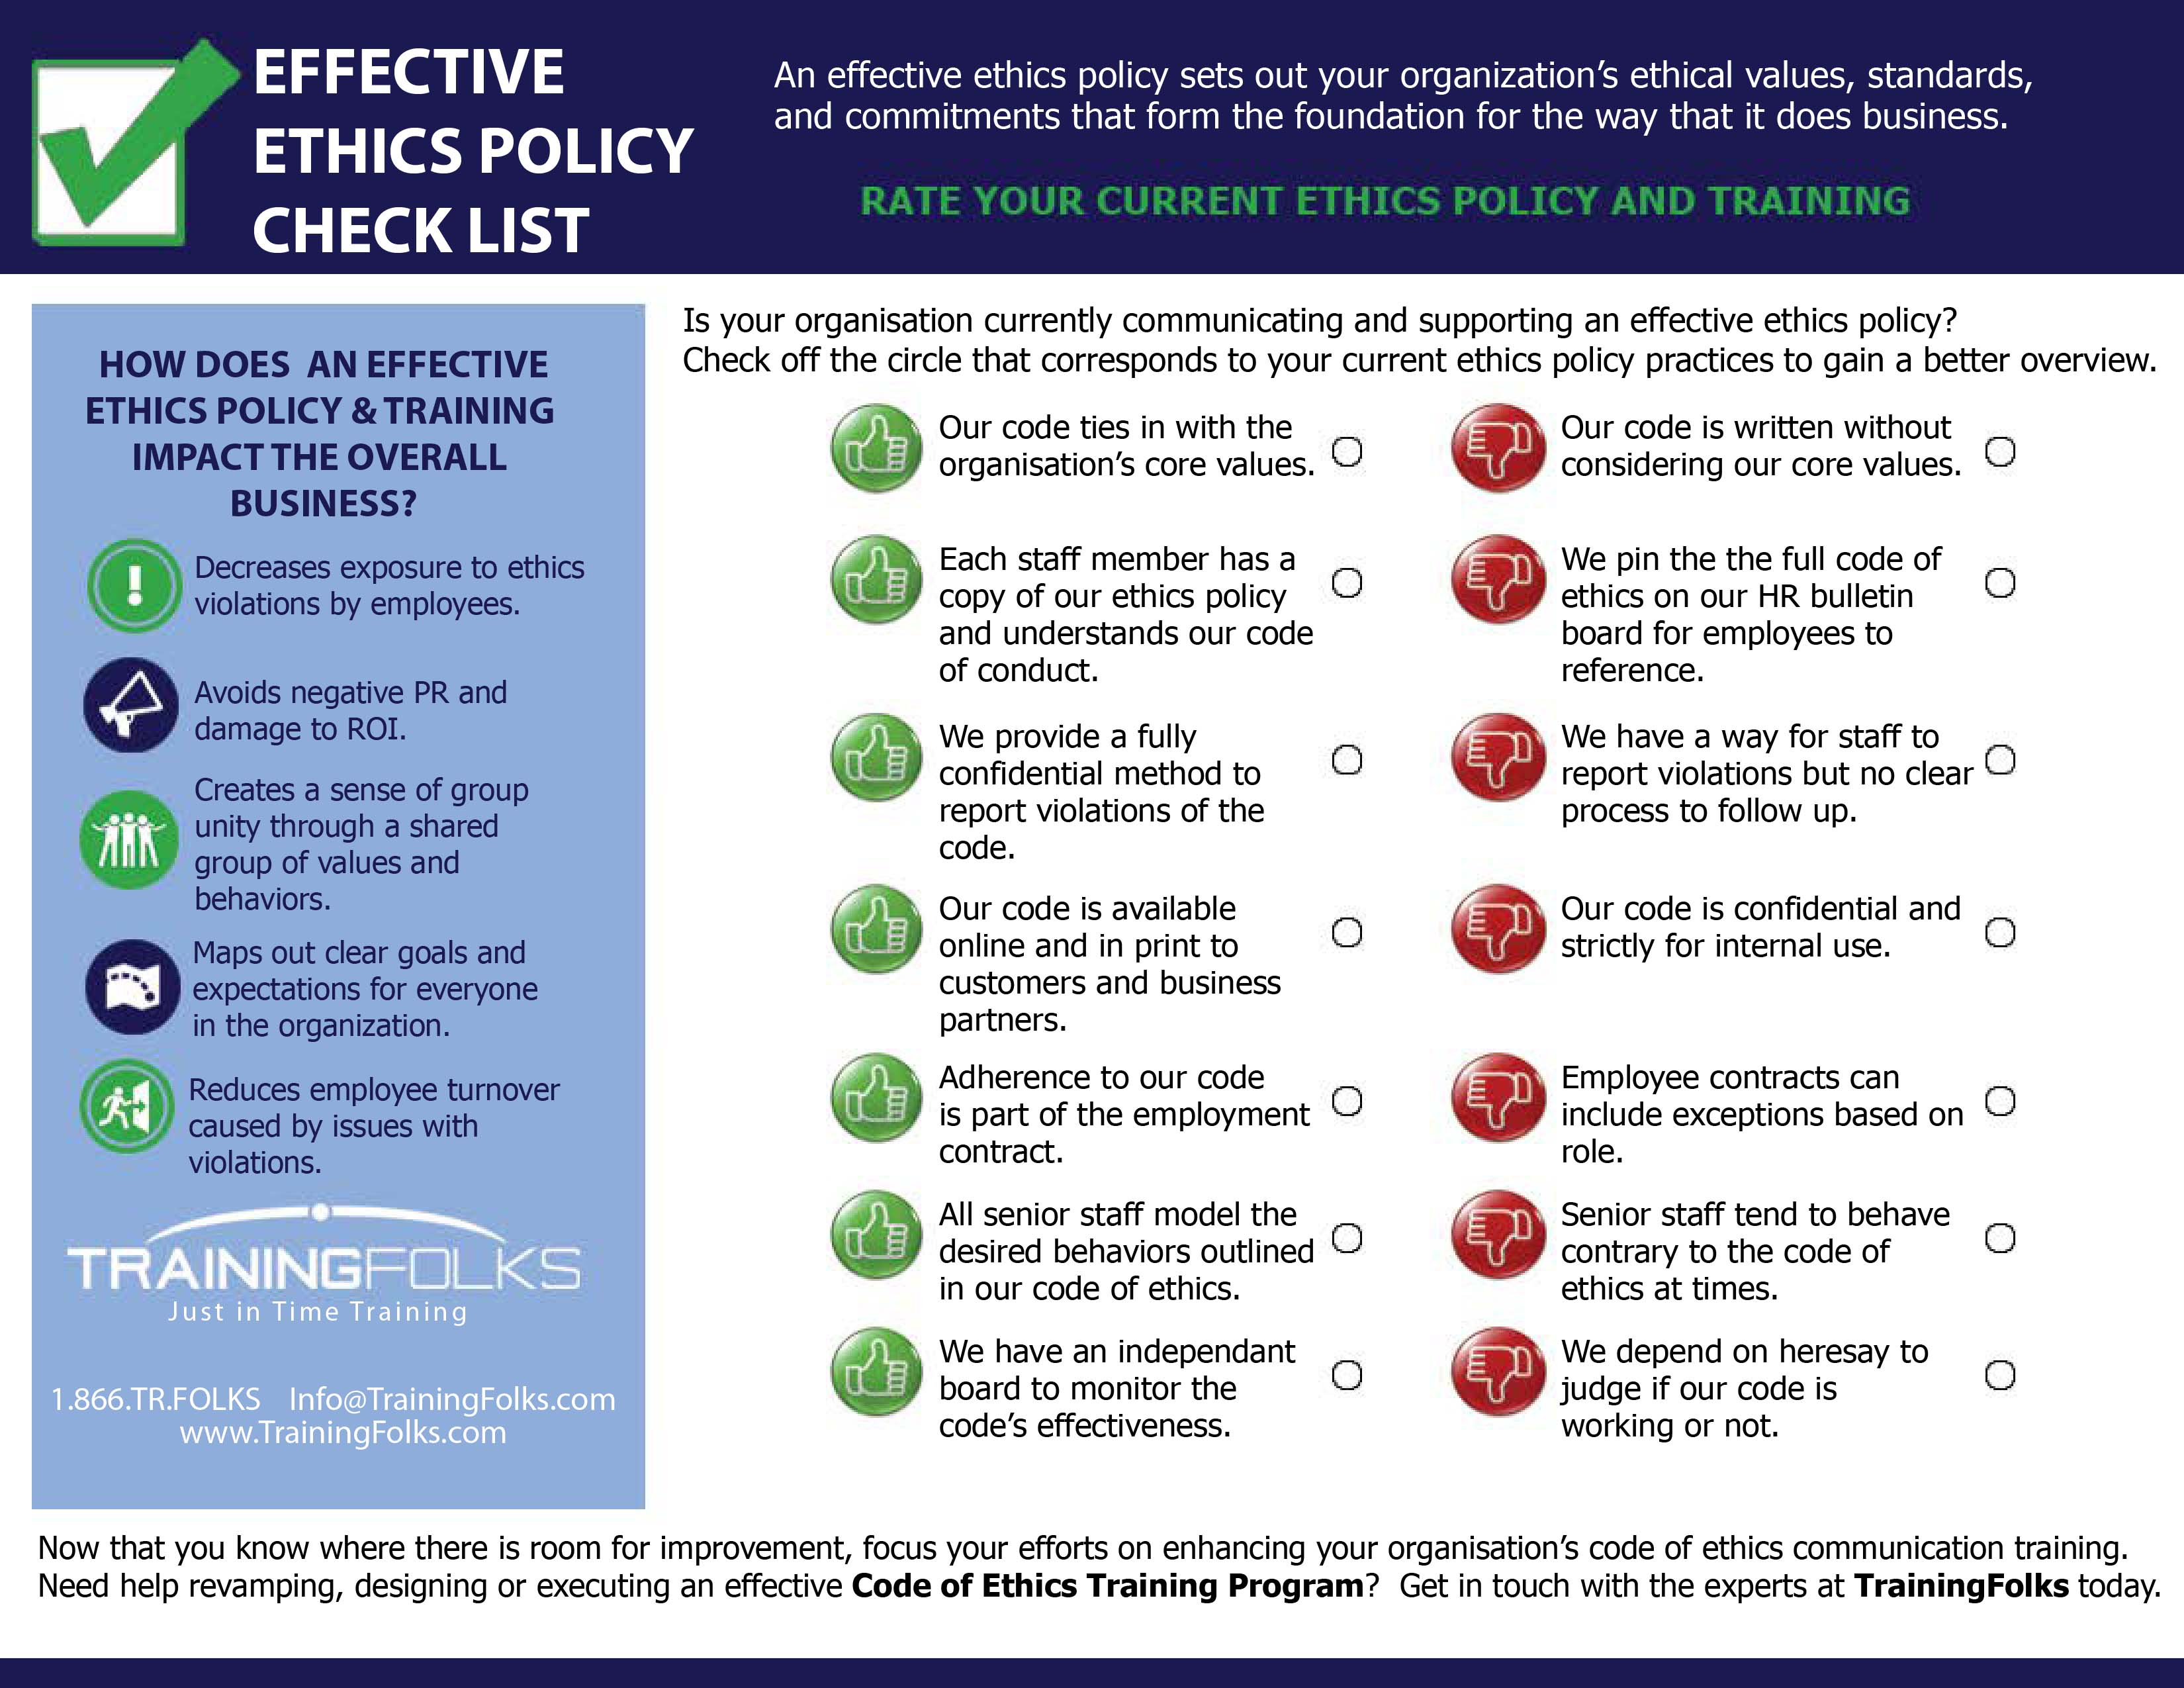 7_Check_Points_To_Ensure_Effective_Ethics_Policy_Training_Printable..jpg